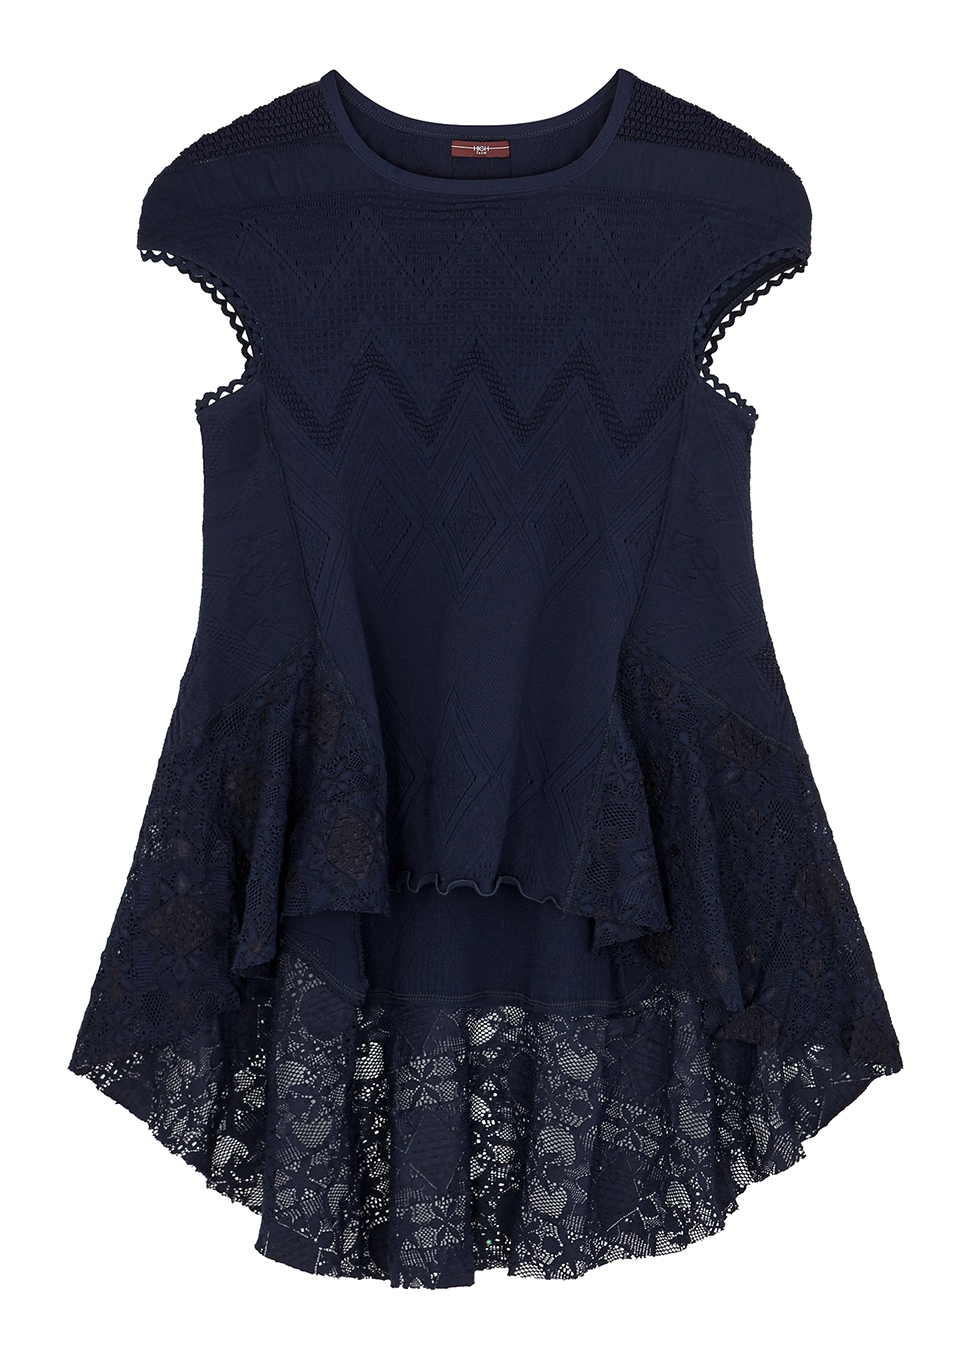 Excite navy stretch-knit top - HIGH